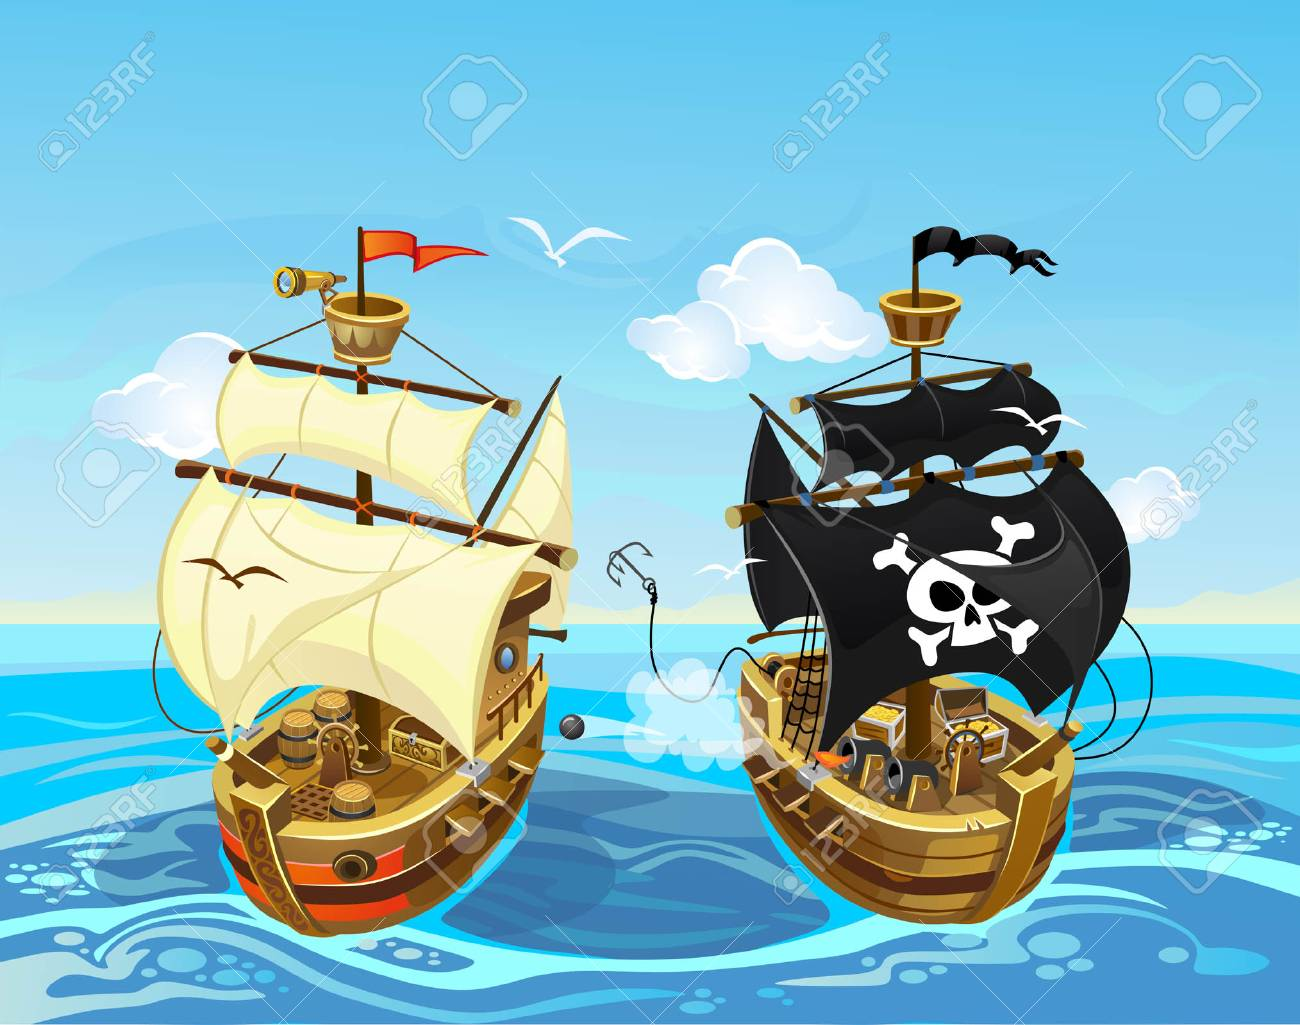 Colorful illustration with pirate ship battle in the sea. Vector cartoon pirate illustration. - 110240594